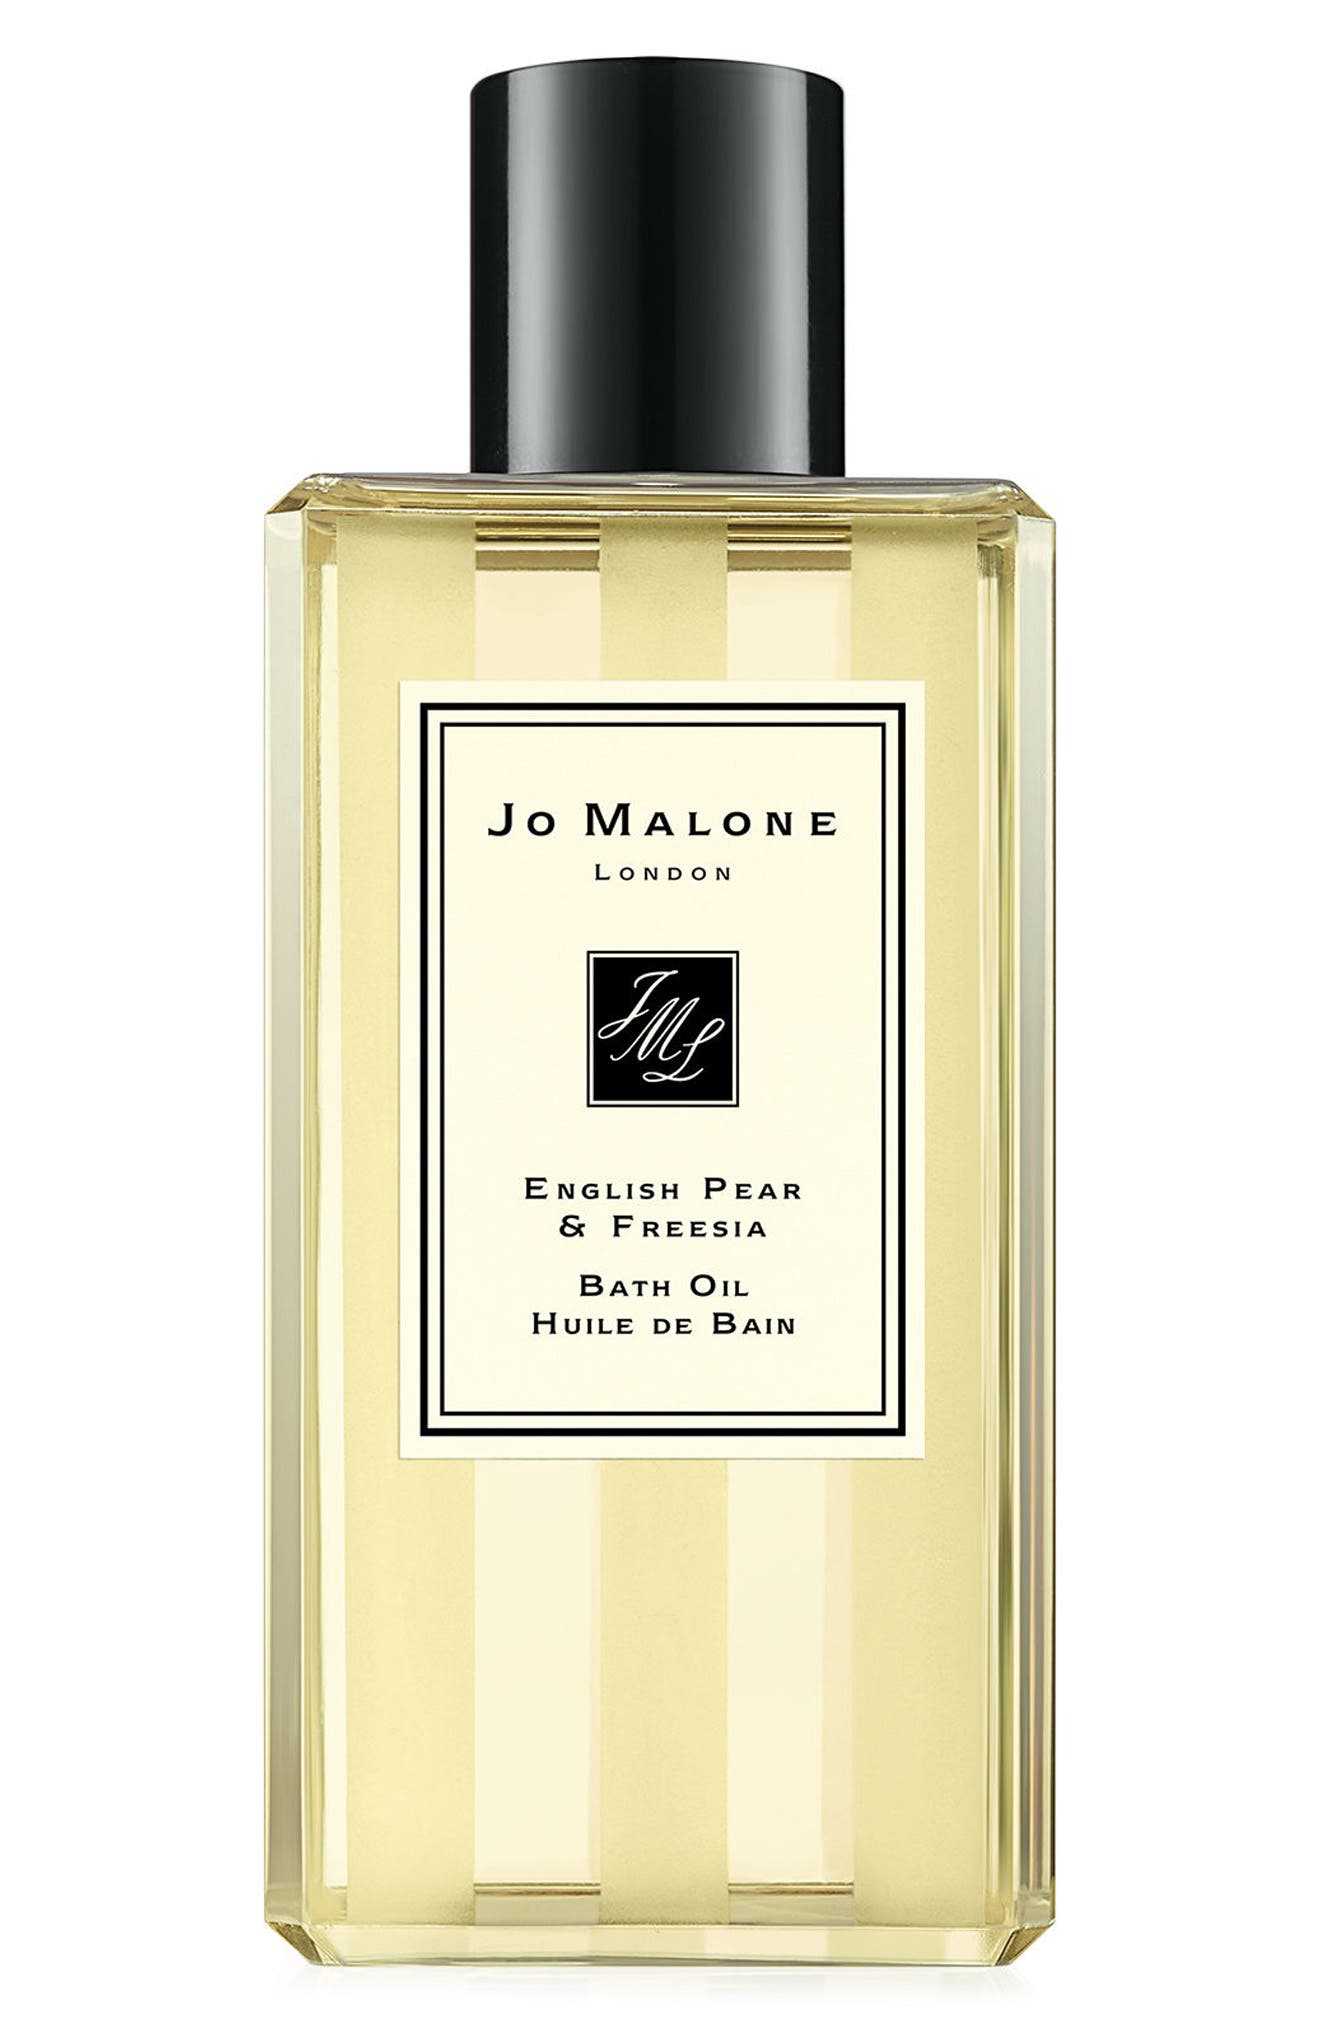 Jo Malone London™ 'English Pear & Freesia' Bath Oil